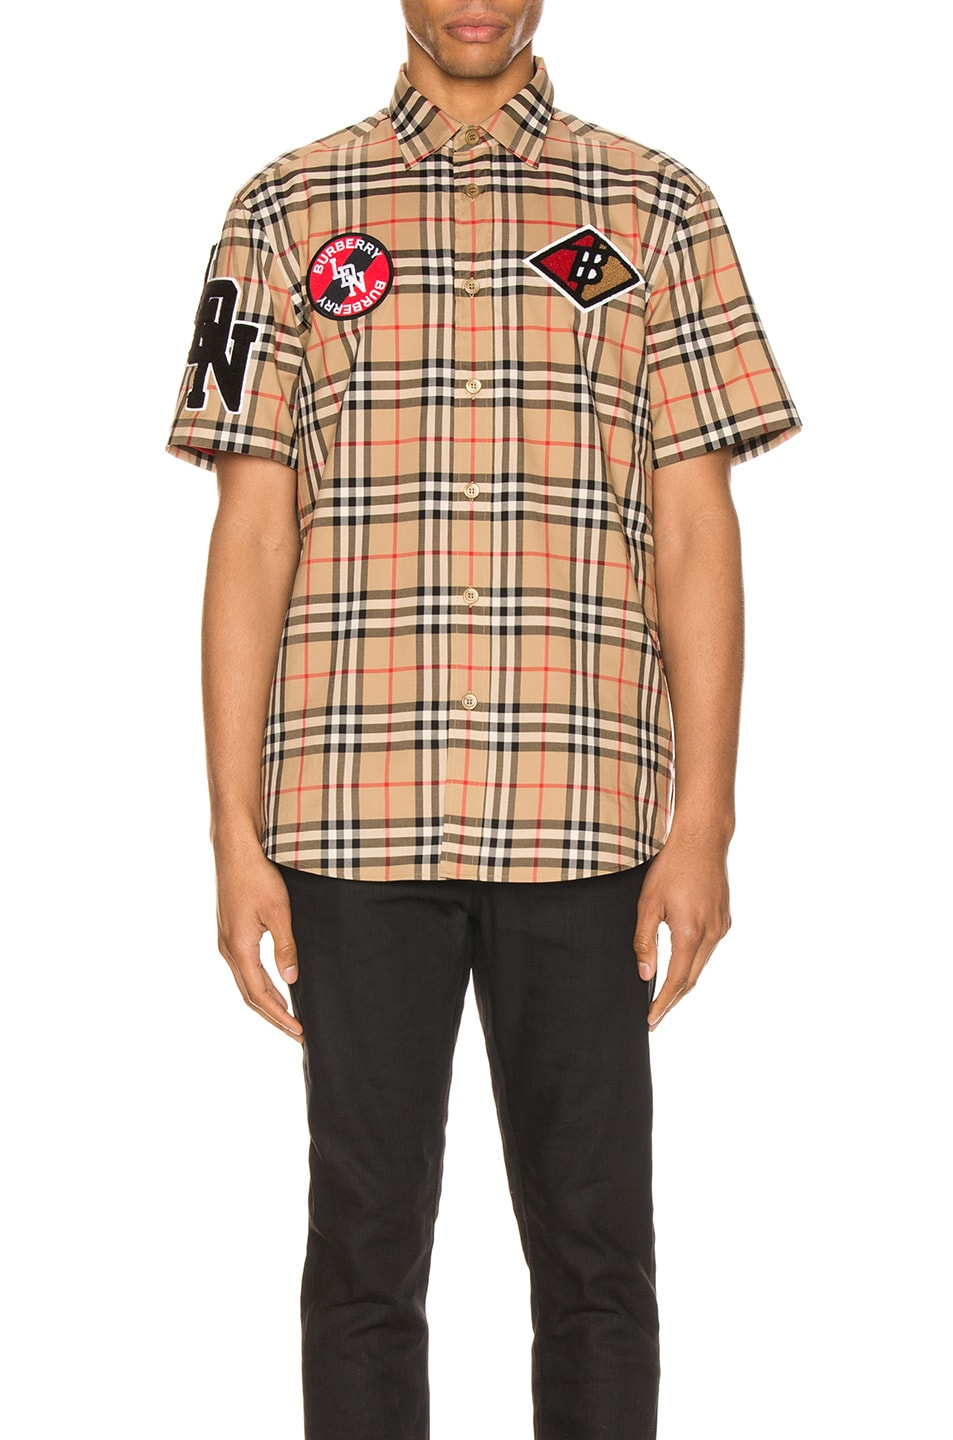 Image 1 of Burberry Combe Short Sleeve Shirt in Archive Beige IP Check